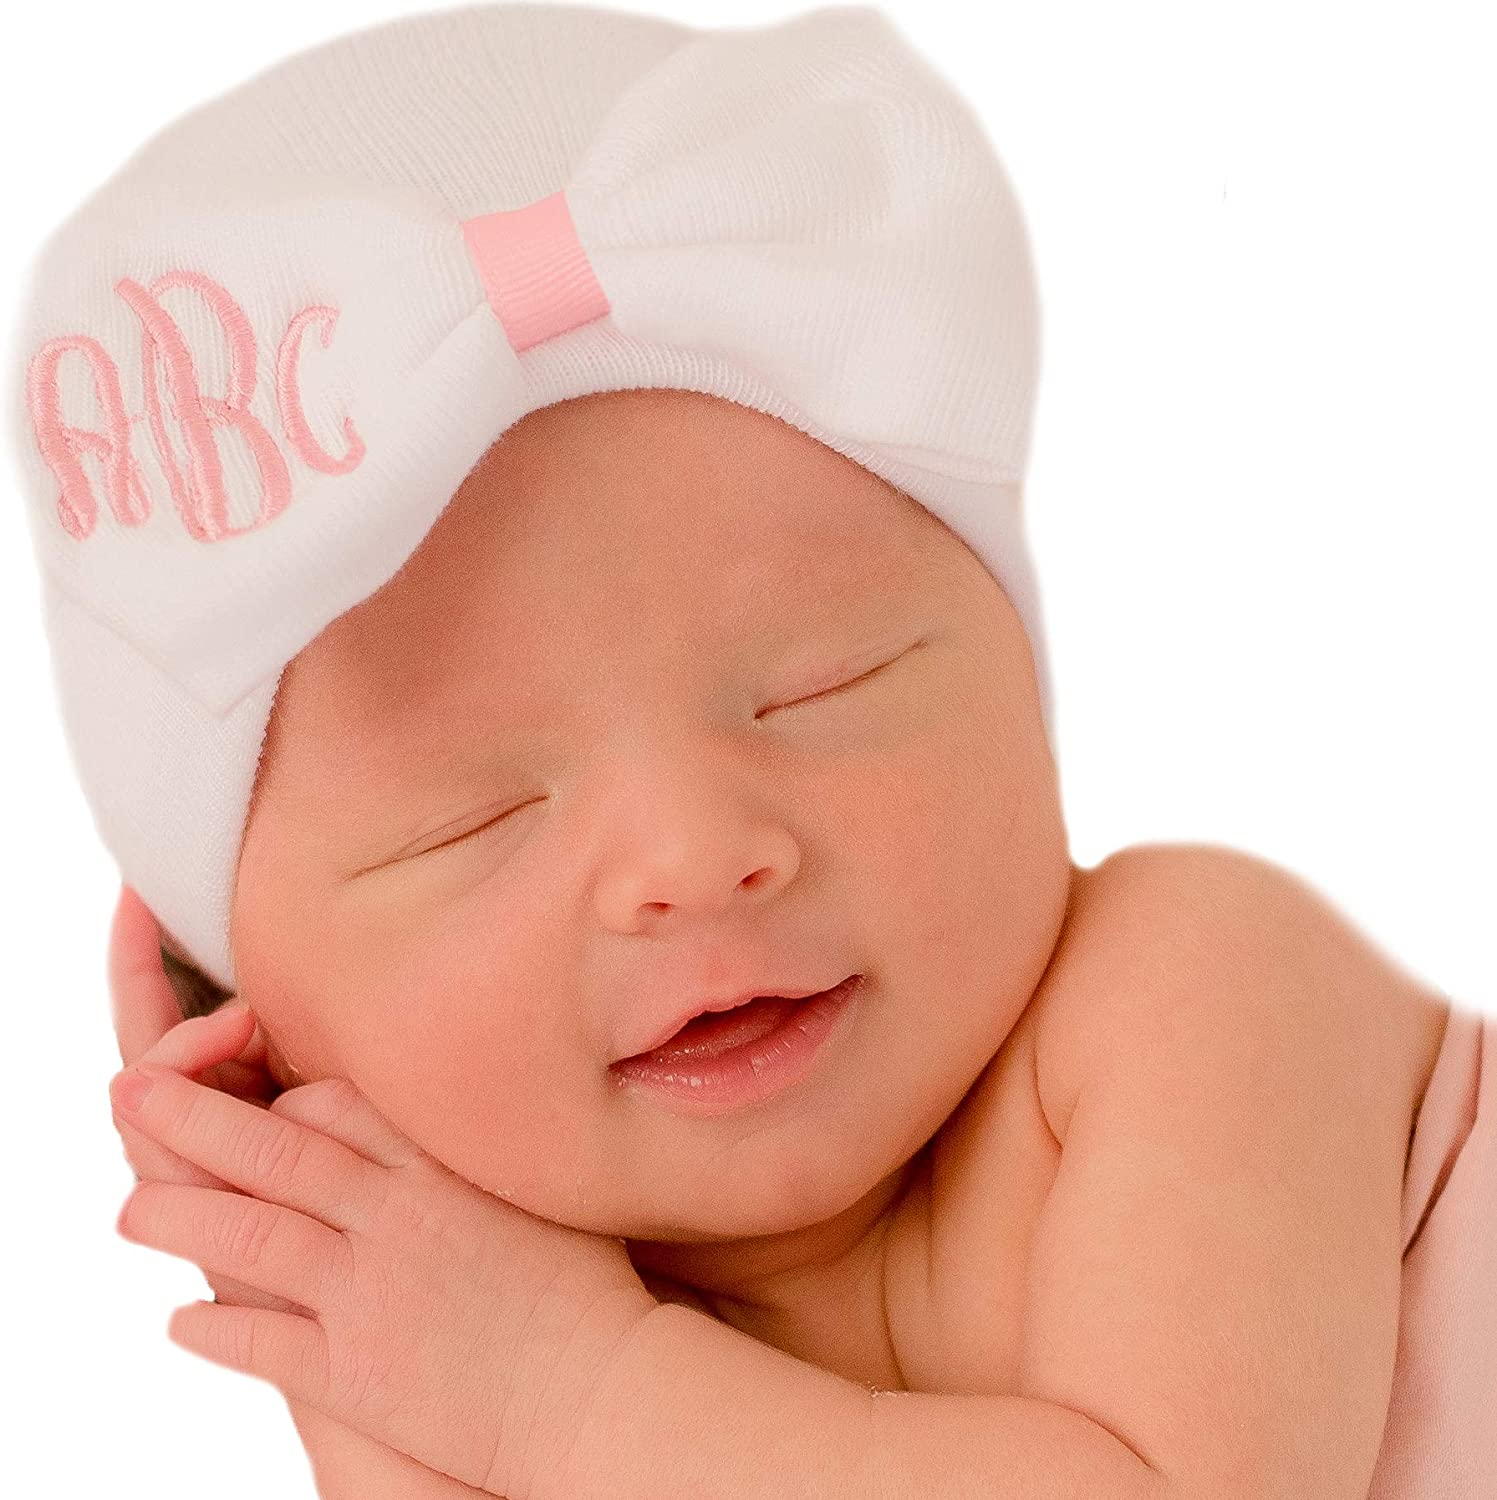 Perfect hospital gift for baby girl Hello World Baby Shower newborn girl gift. Hospital Newborn Beanie Newborn baby girl hospital hat